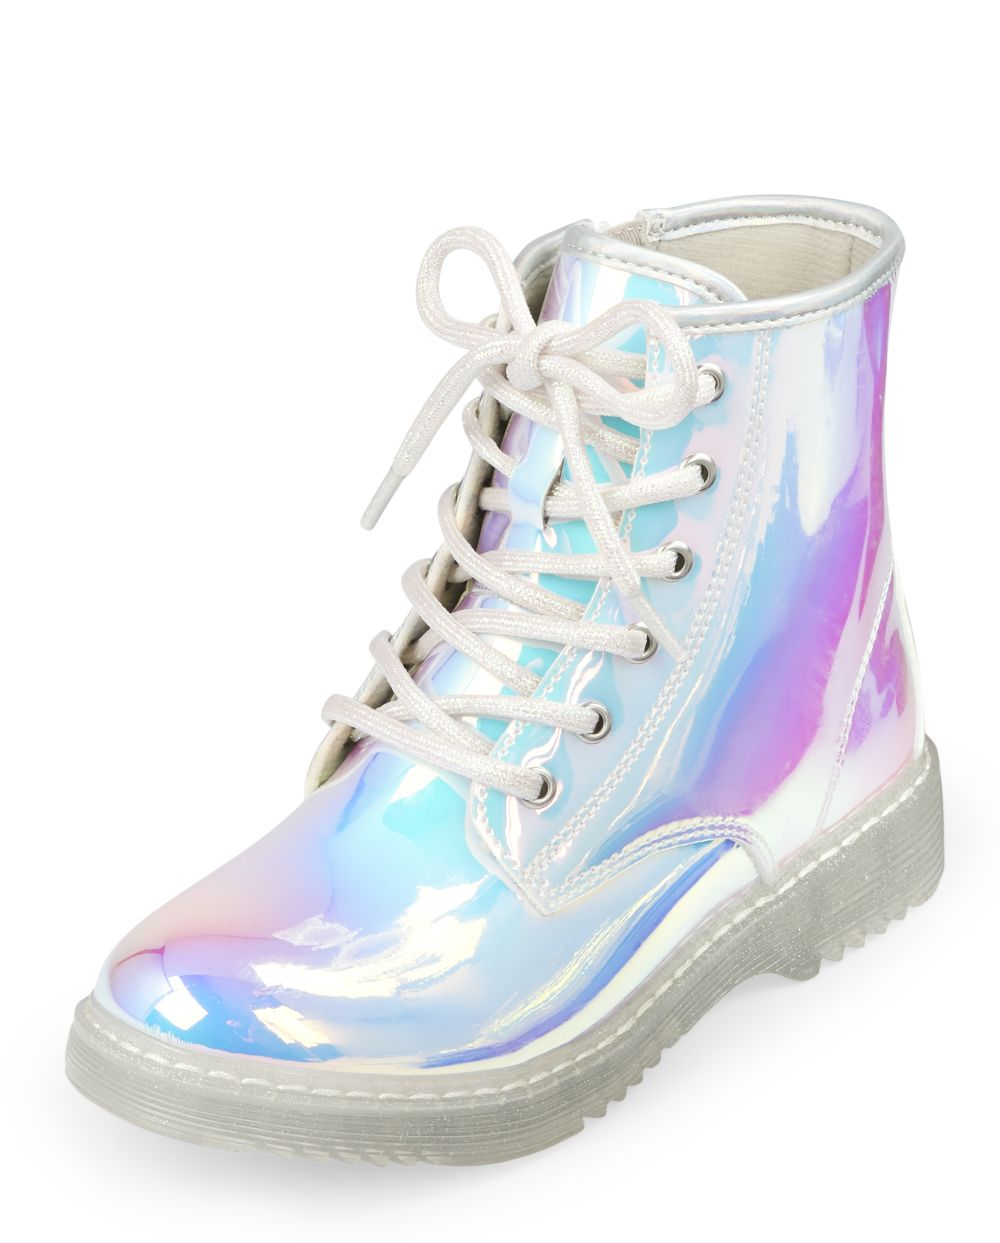 Girls Holographic Lace Up Booties